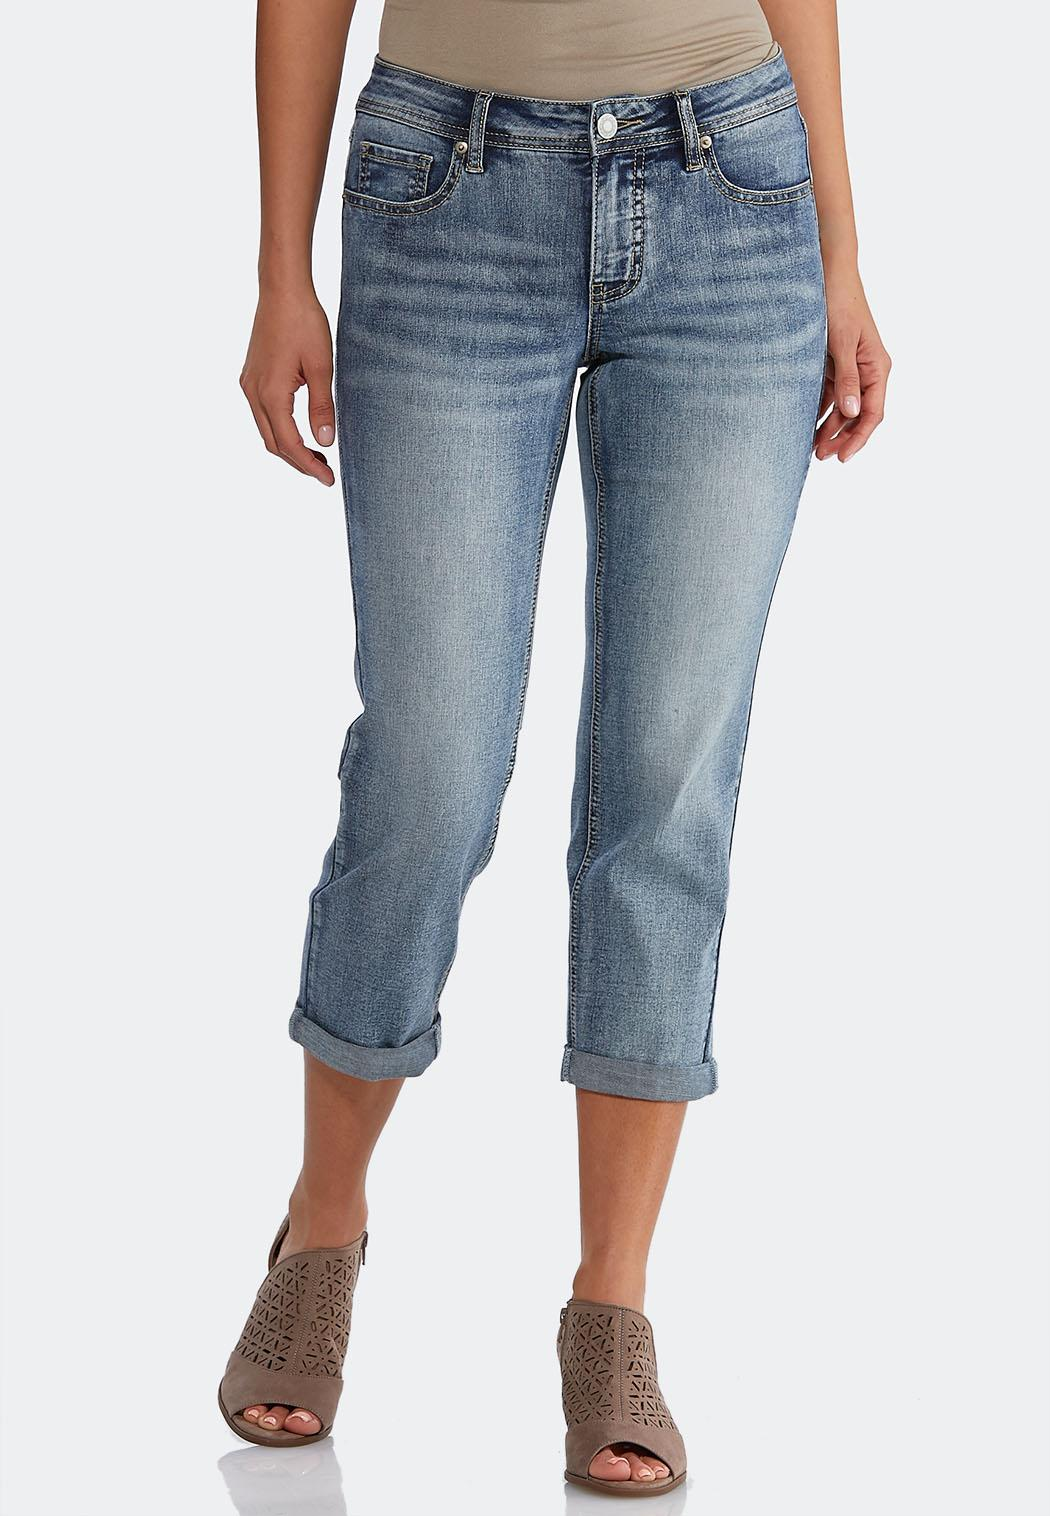 Cropped Faded Wash Denim Jeans